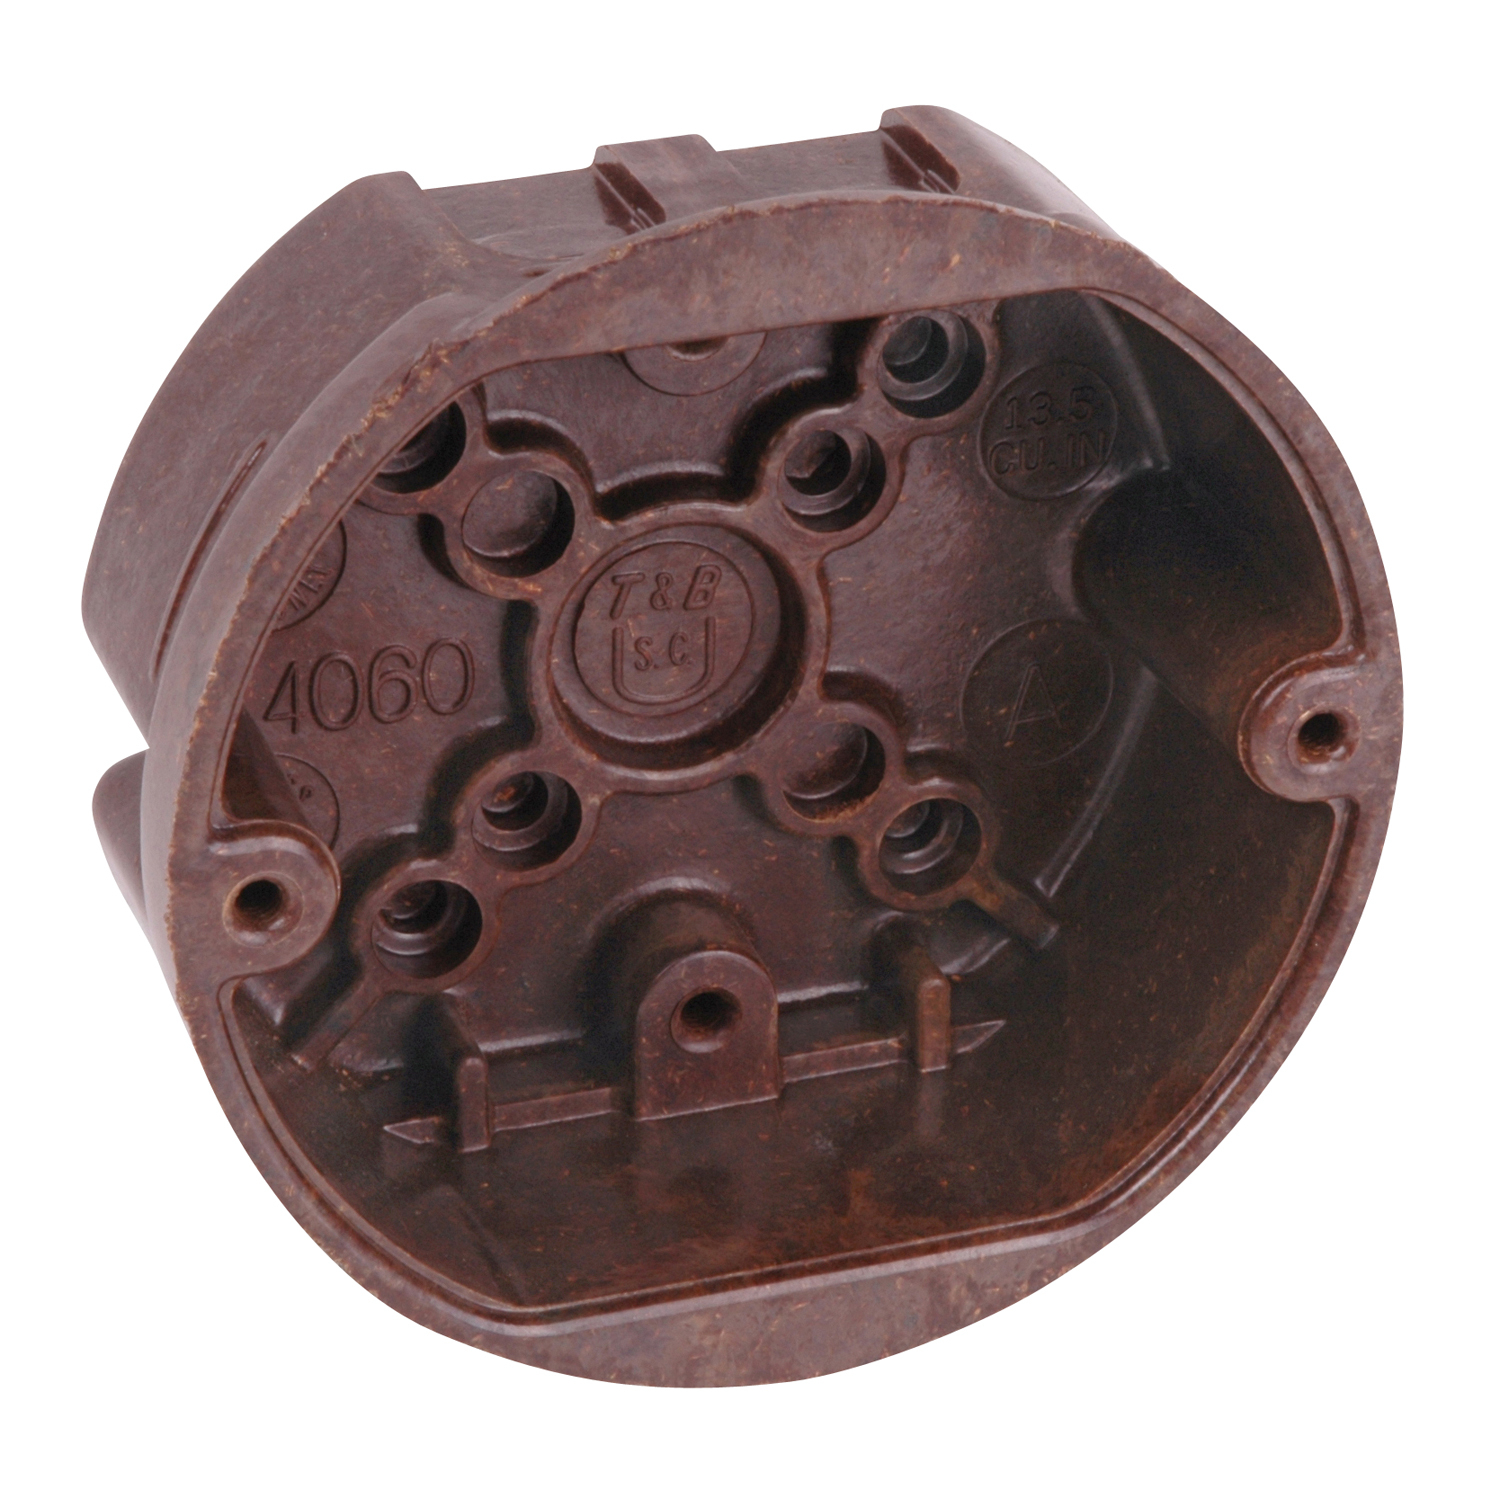 Carlon® Ceiling/Fixture Outlet Box, 4 in Diameter, Round Shape, Nail-On/Threaded Mounting, 13.5 cu-in Capacity, Phenolic, Brown, 1-5/8 in D Dimensions